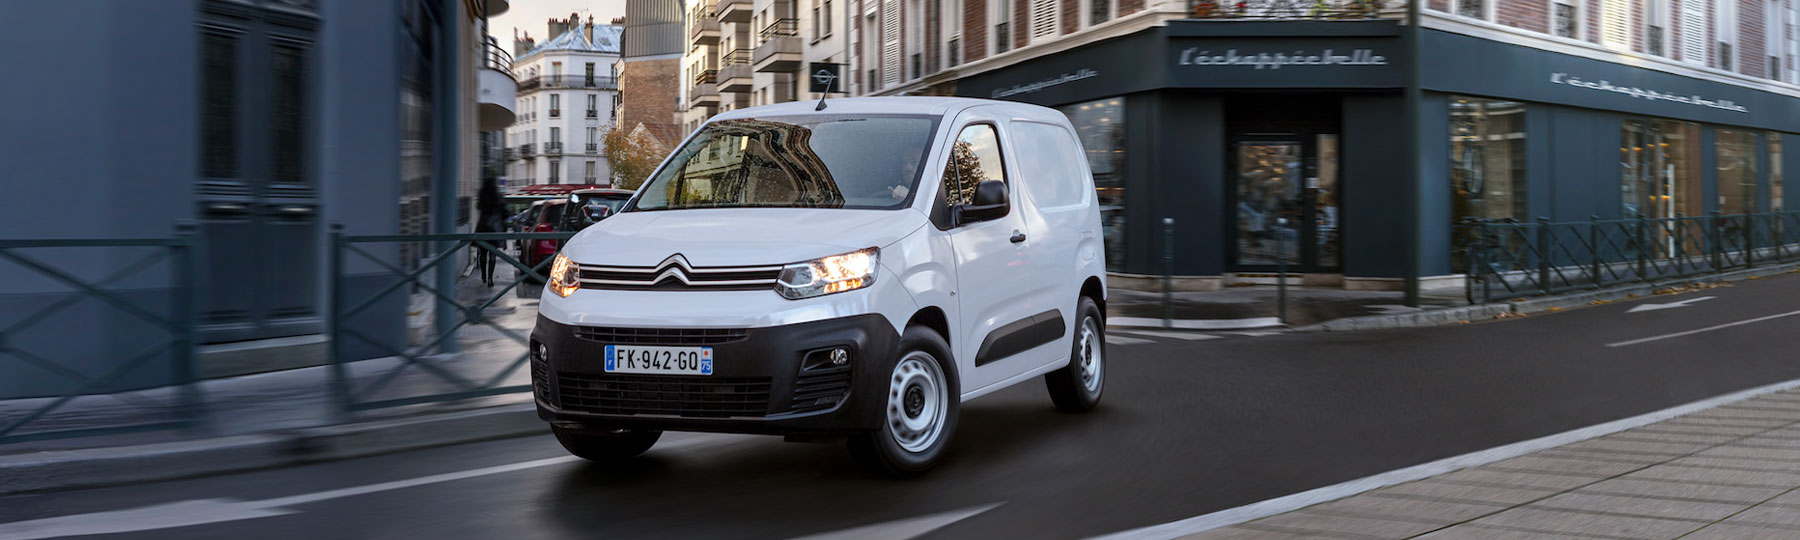 citroen Berlingo Van Leasing Offer